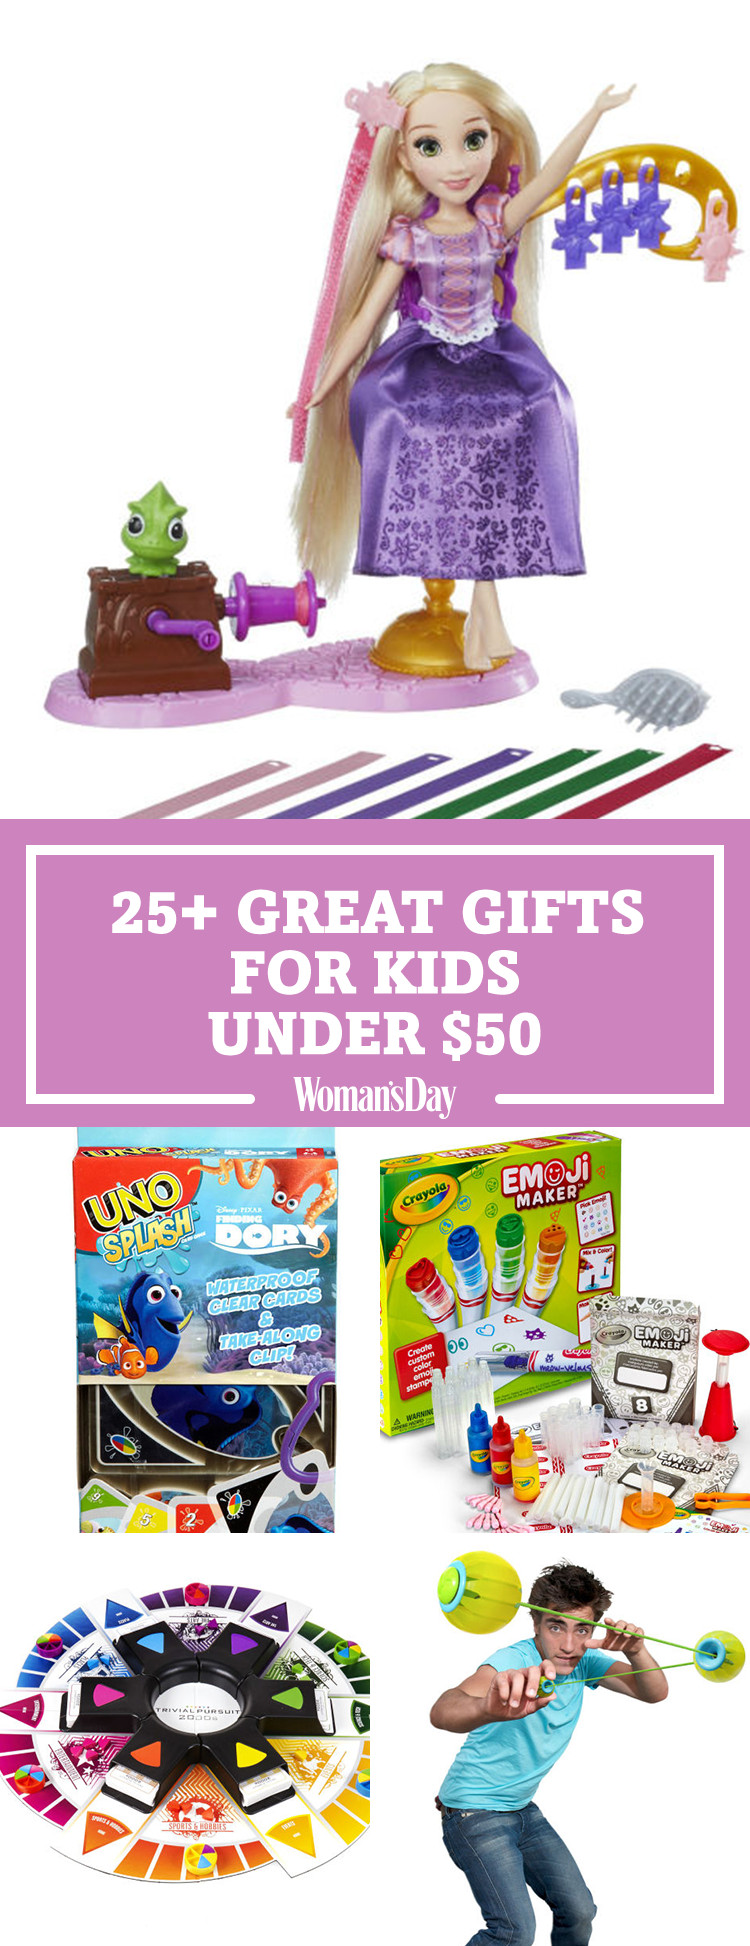 Popular Gifts For Kids  30 Best Christmas Gifts for Kids 2017 Holiday Gift Ideas